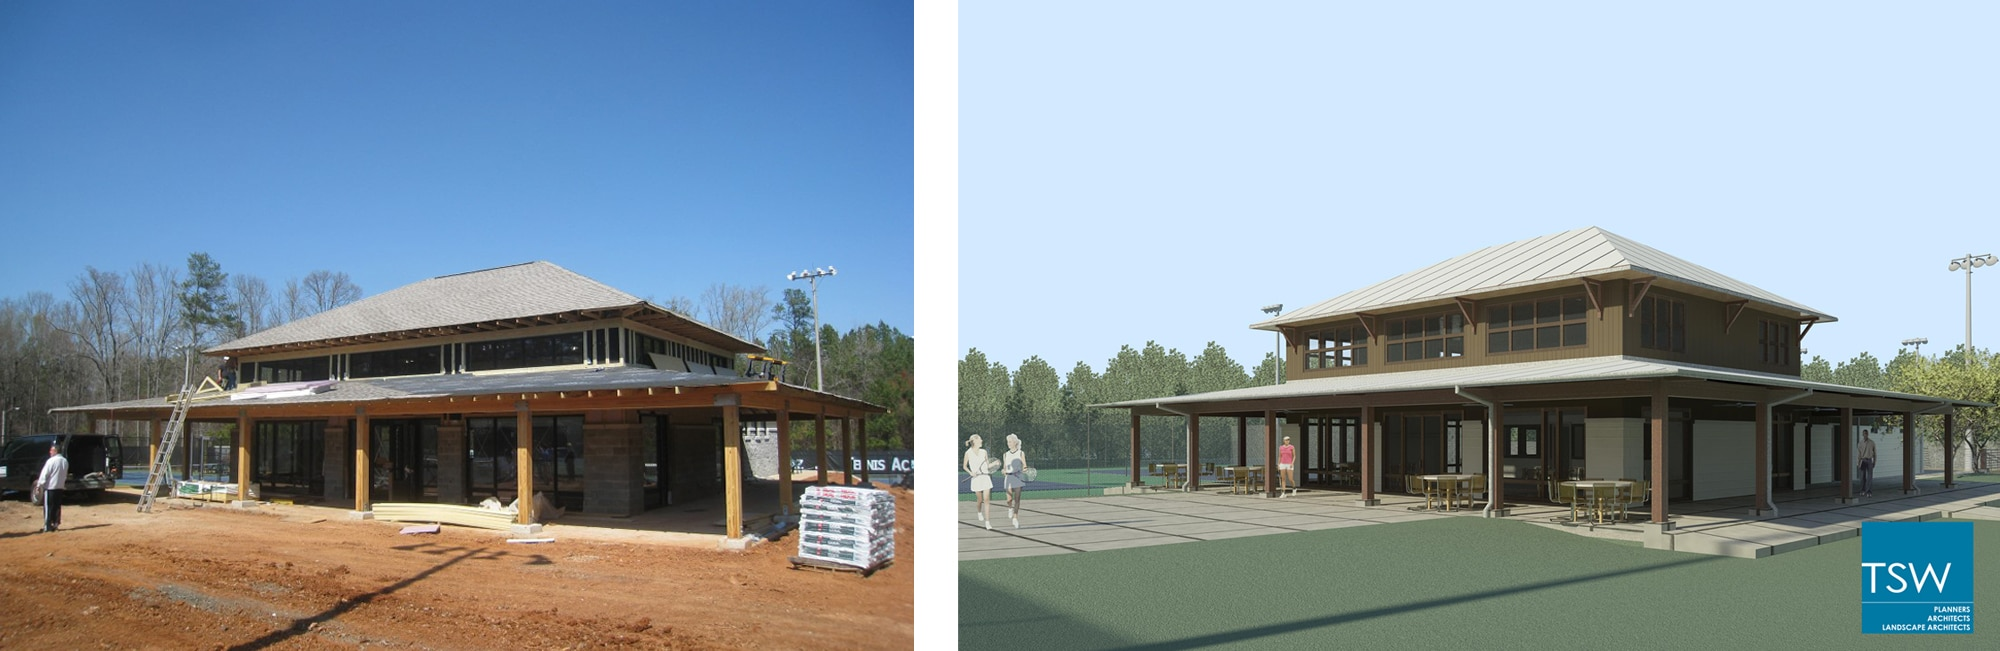 Cobb_Tennis_ construction_rendering